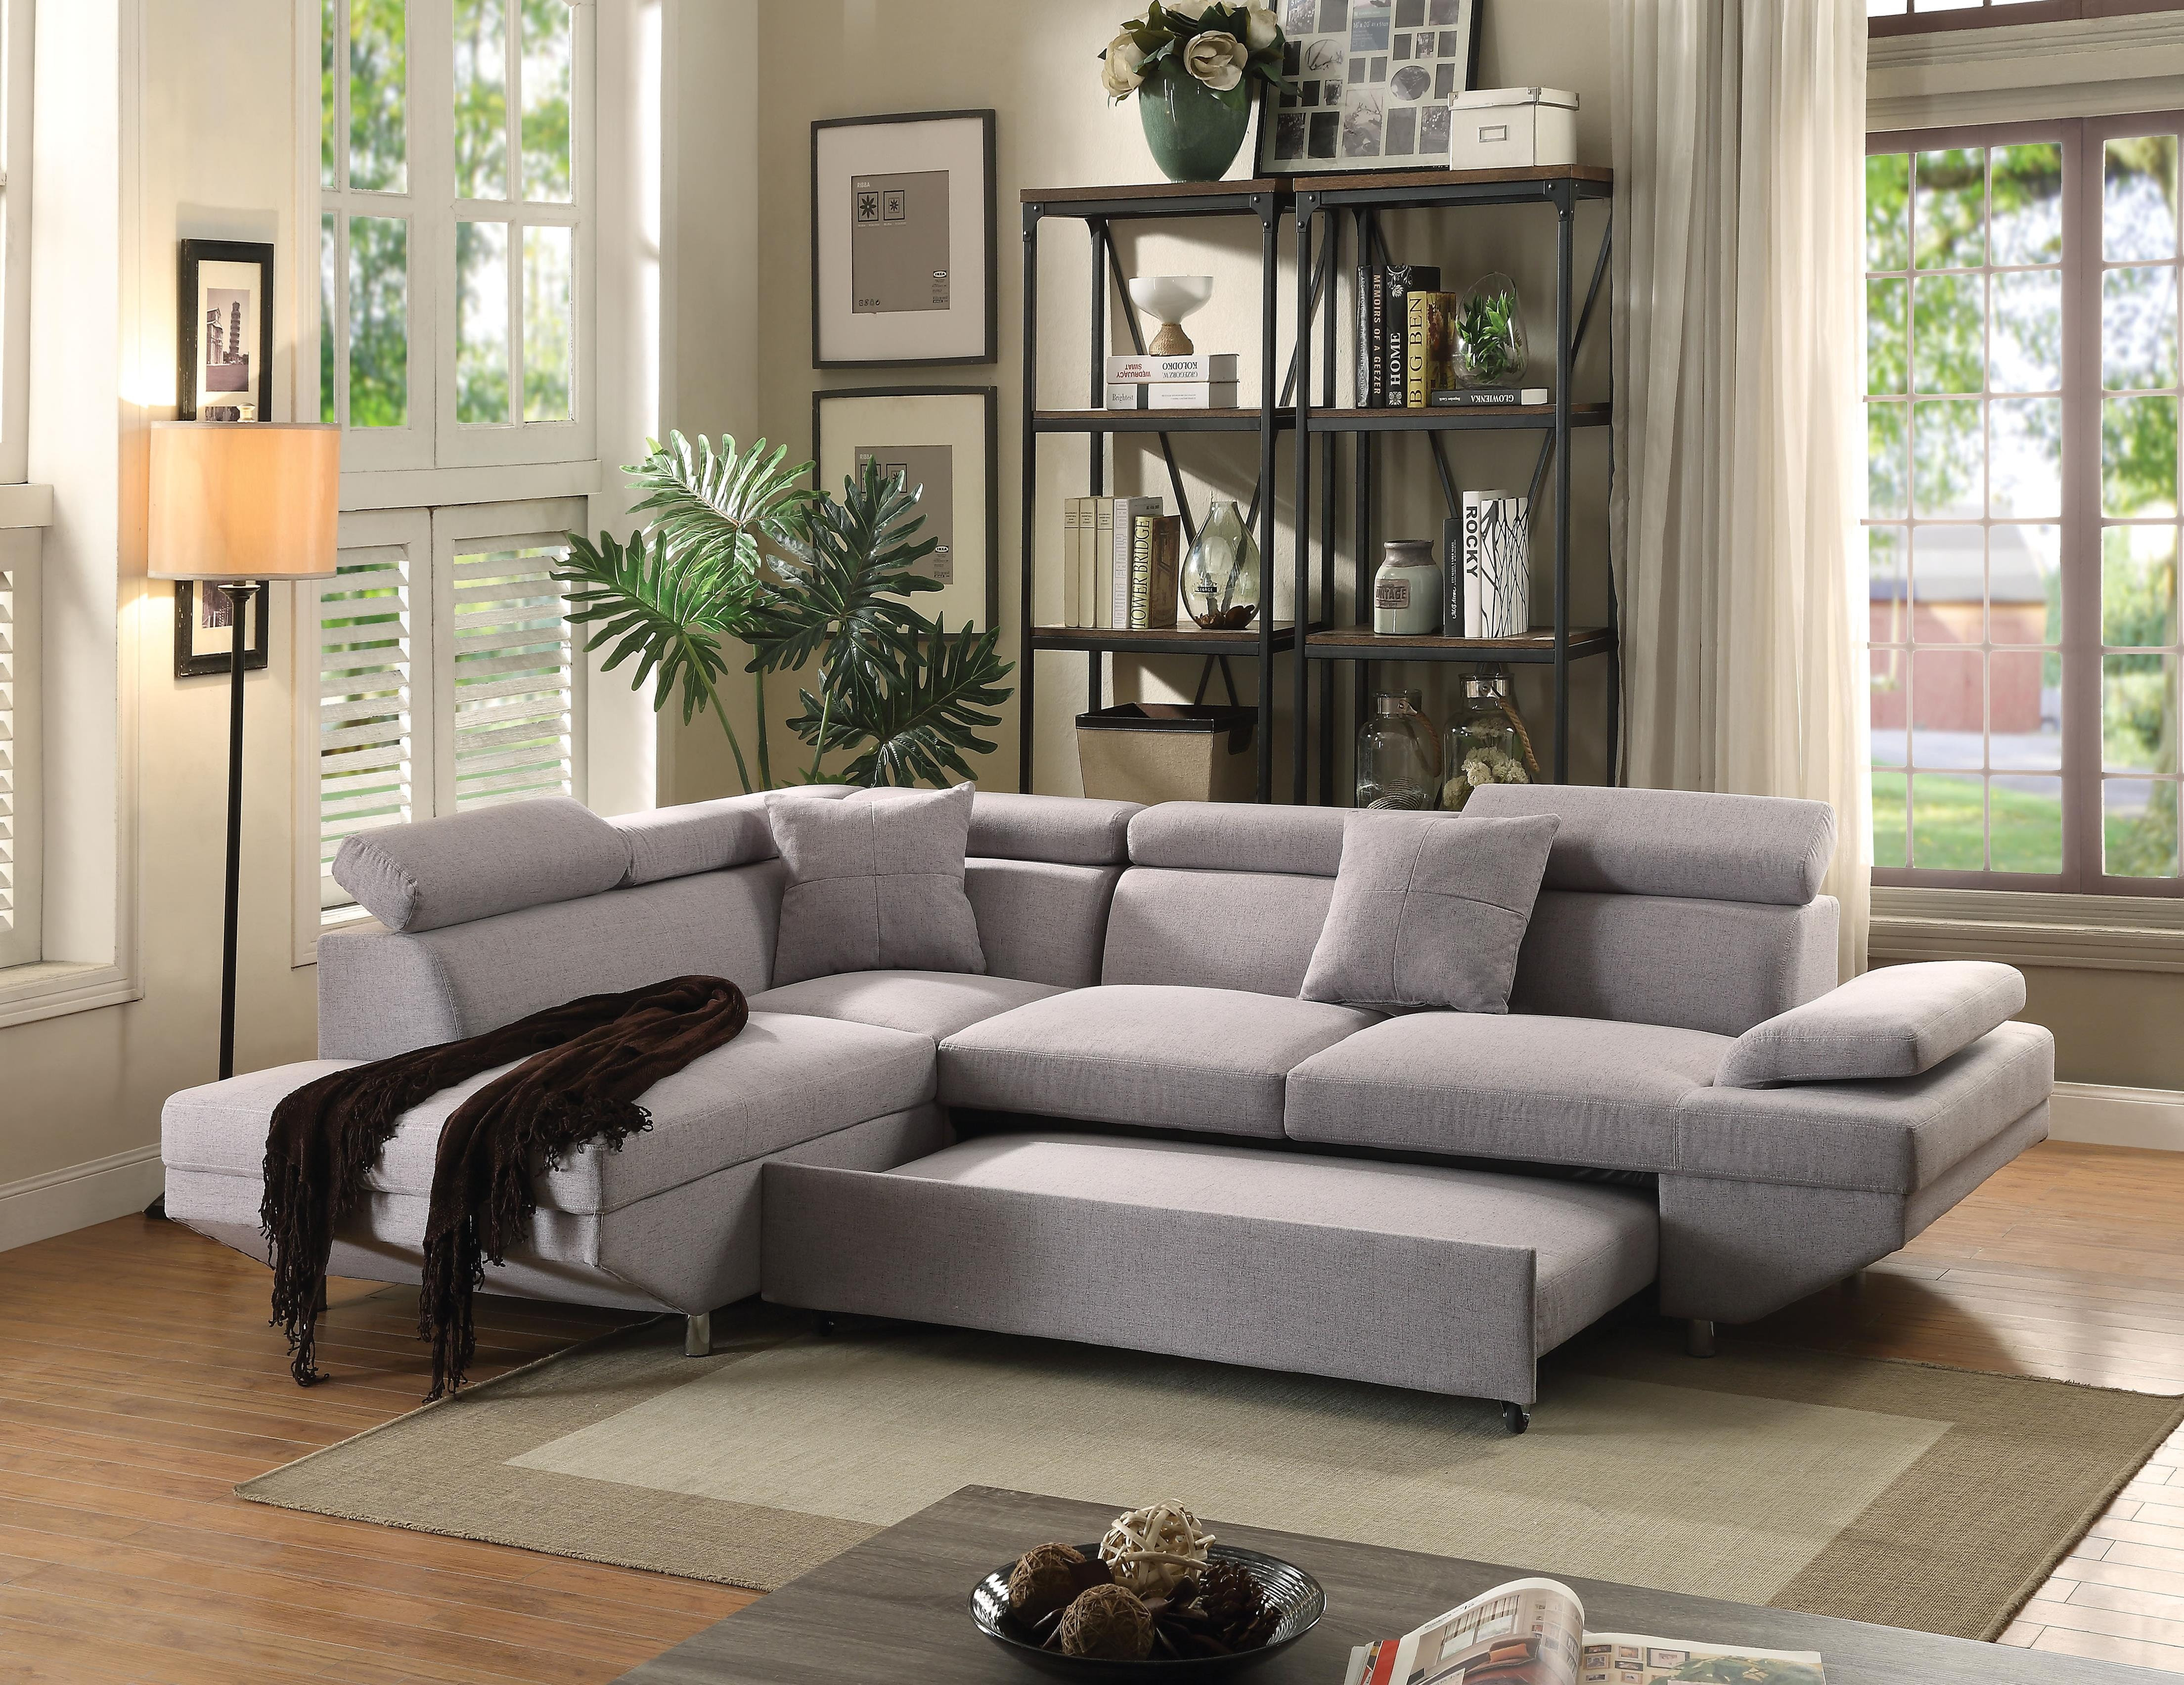 Attrayant Acme Furniture Jemima Sectional Sofa With Sleeper 52990